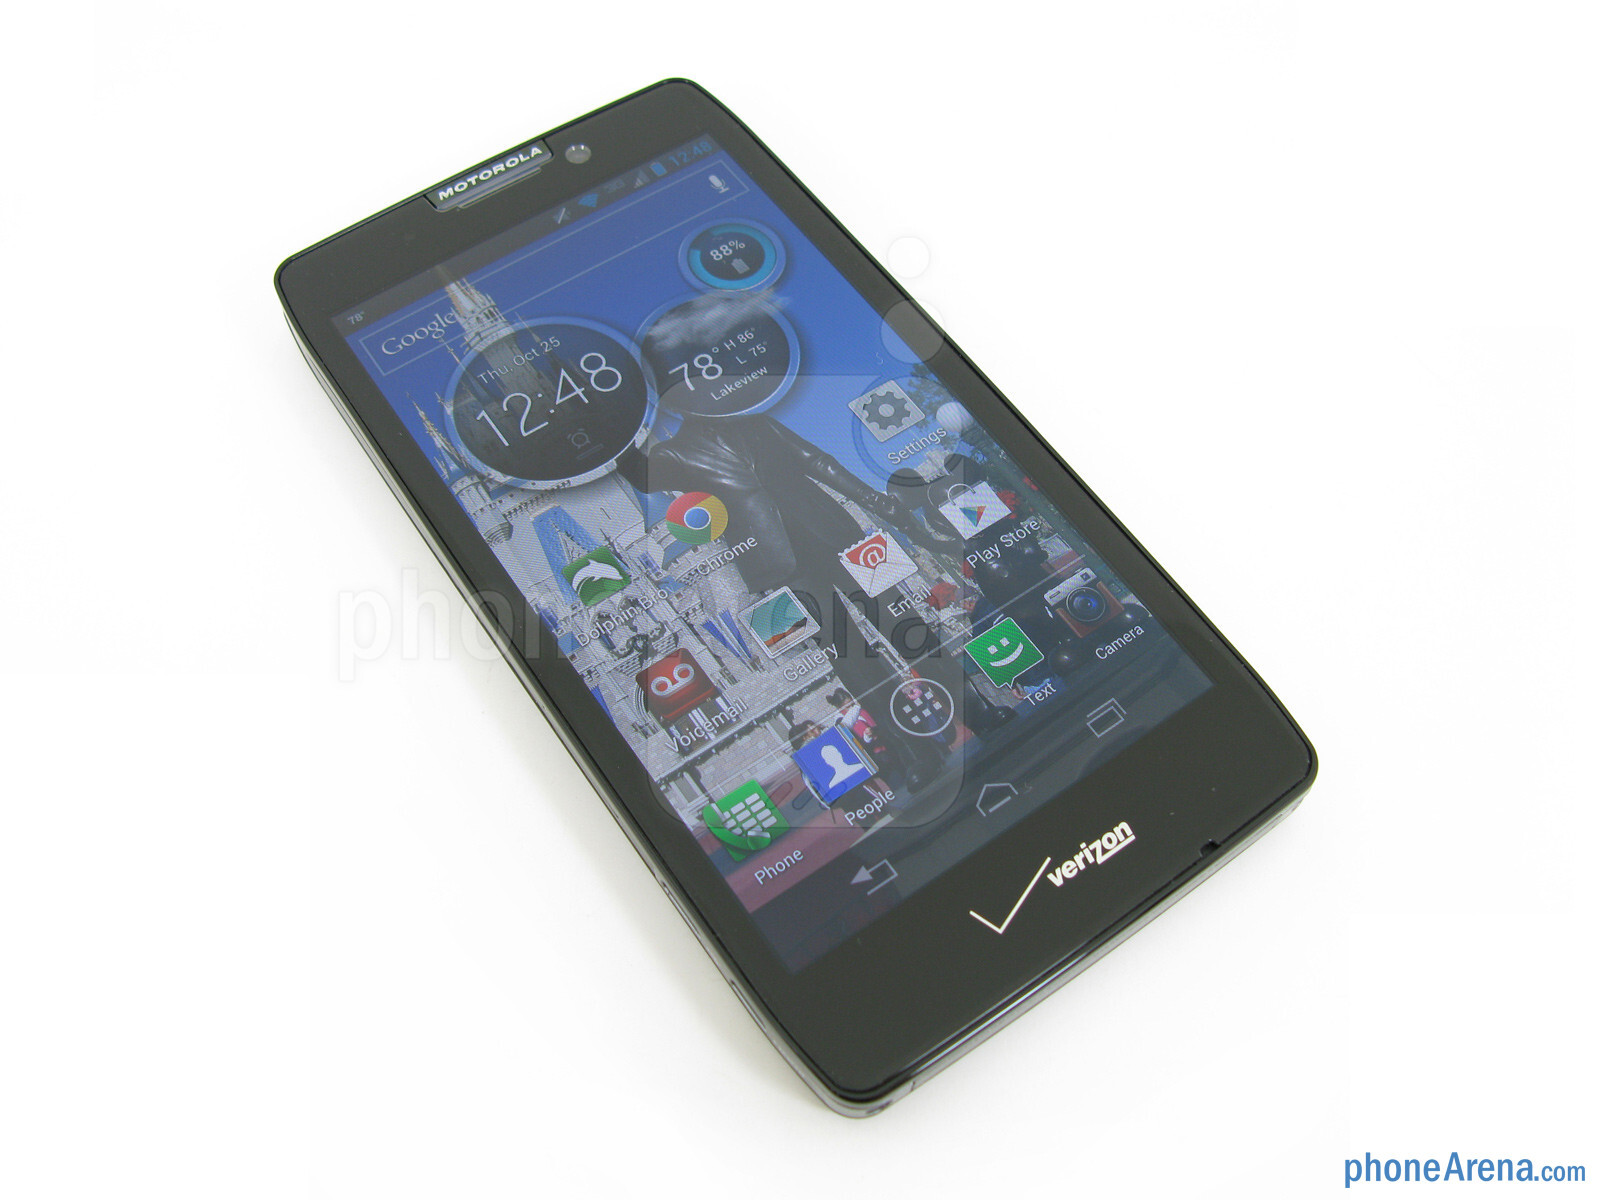 droid razr maxx hd stock wallpapers images